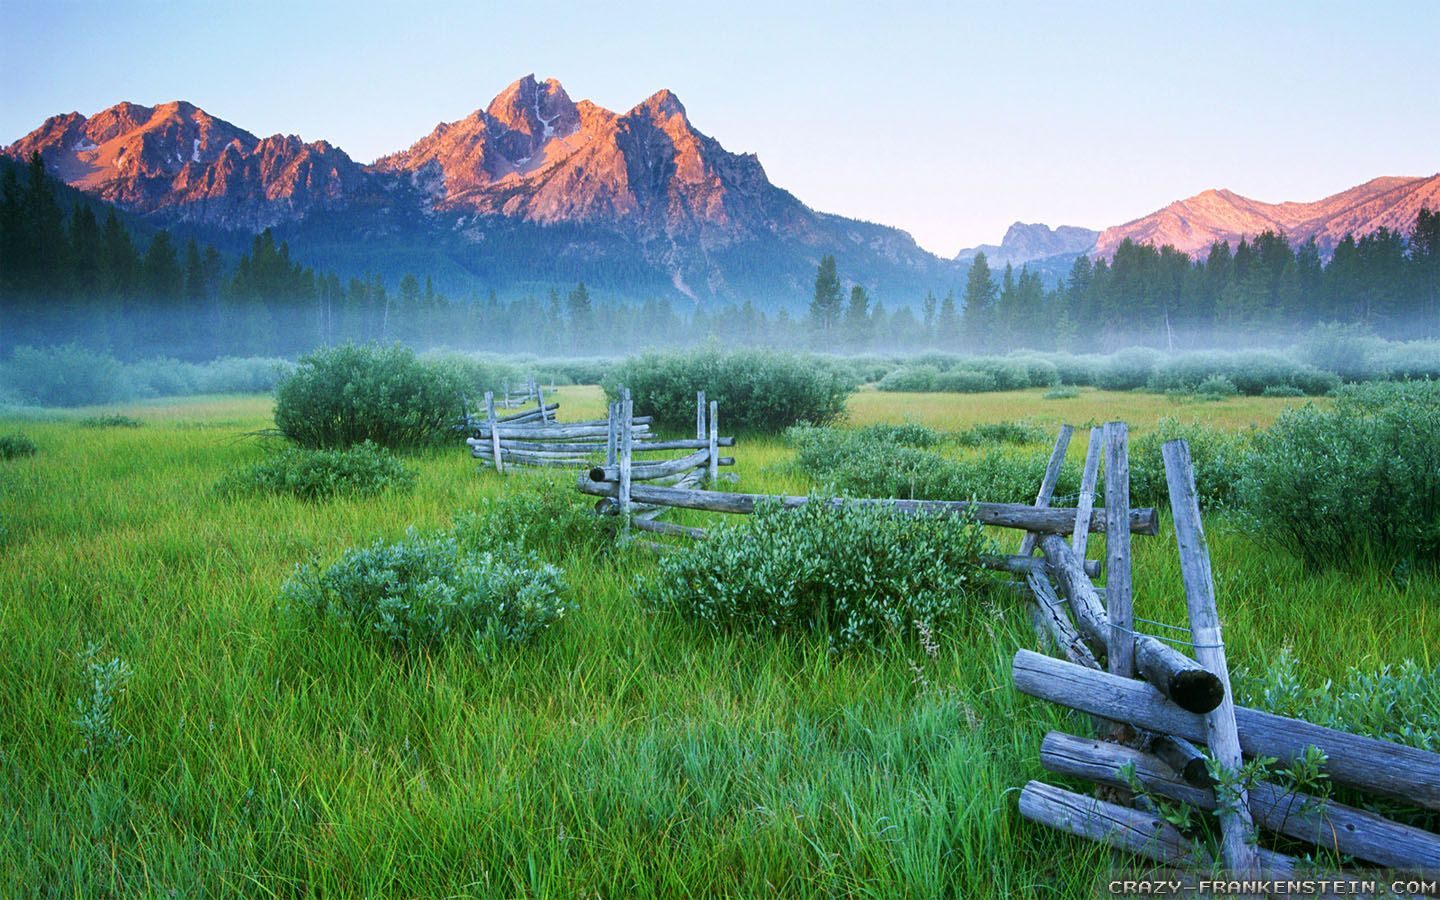 Mountain Springs Hotel Office Manager Mail: Rail Fence Spring Mountain Meadow